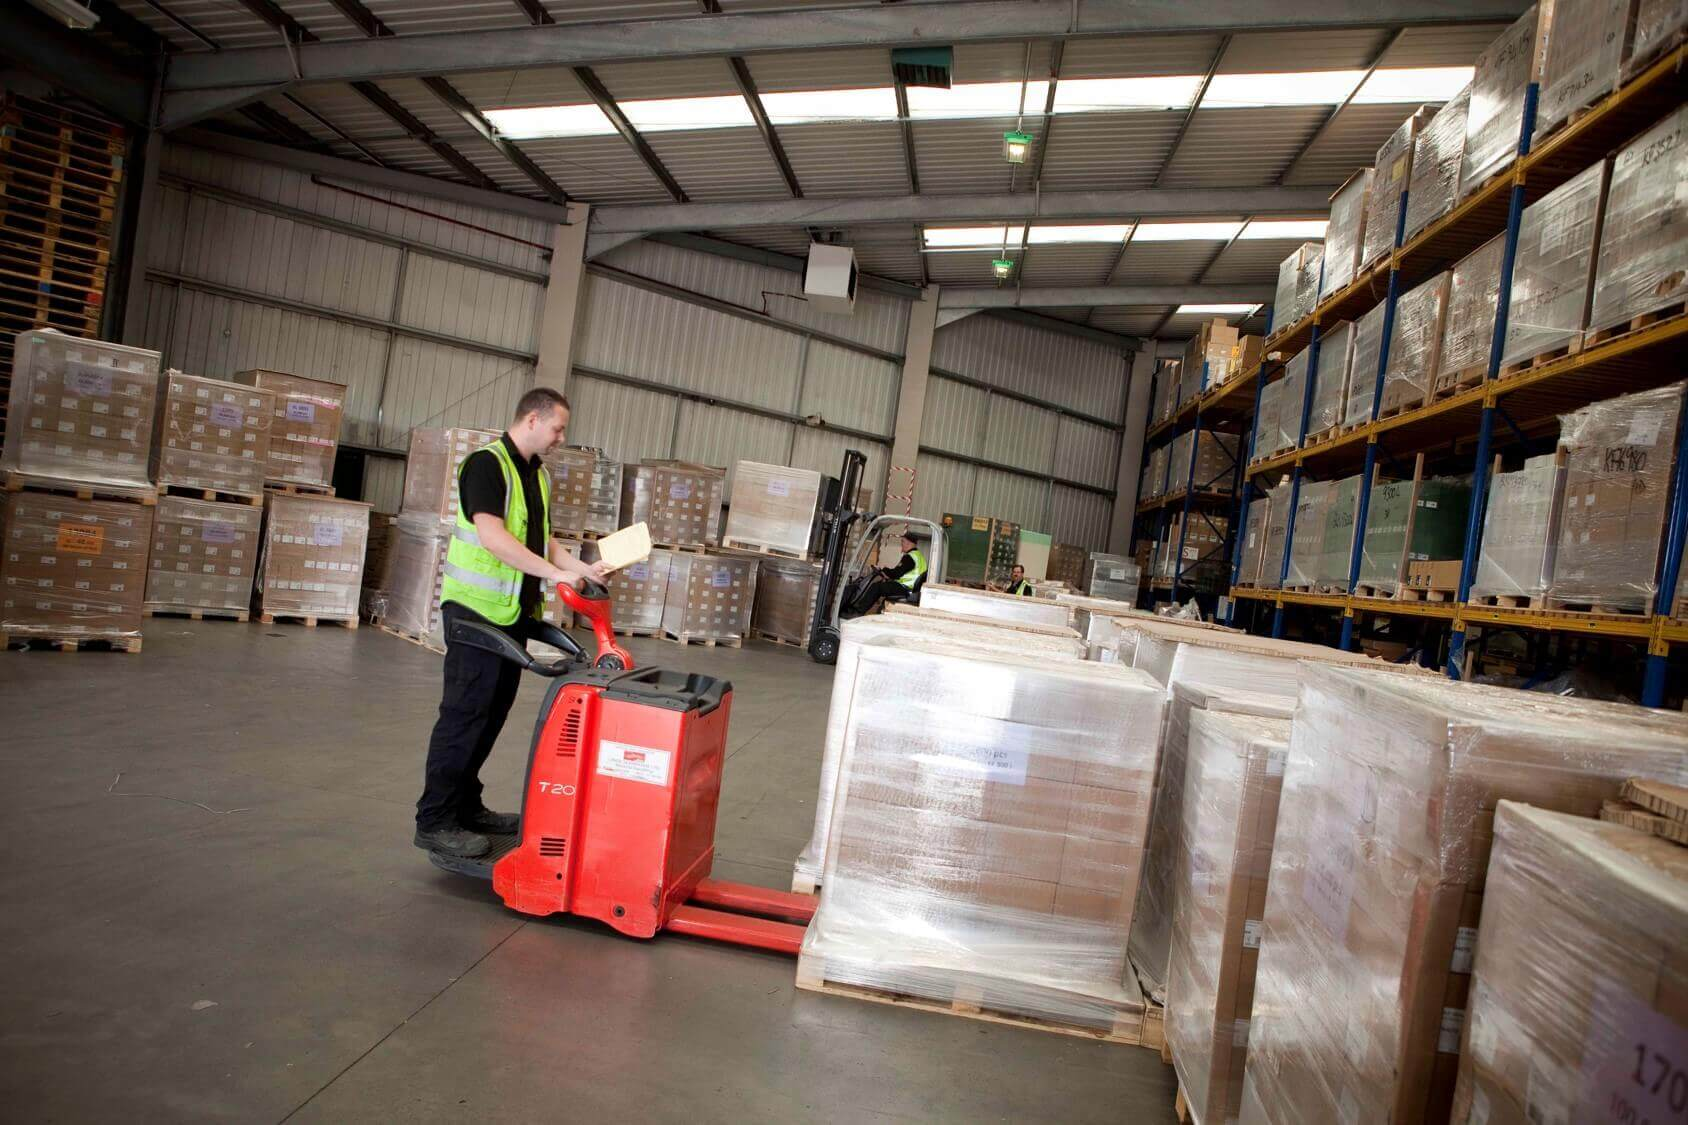 Conserving Energy With Motion Sensitive LED Warehouse Lighting